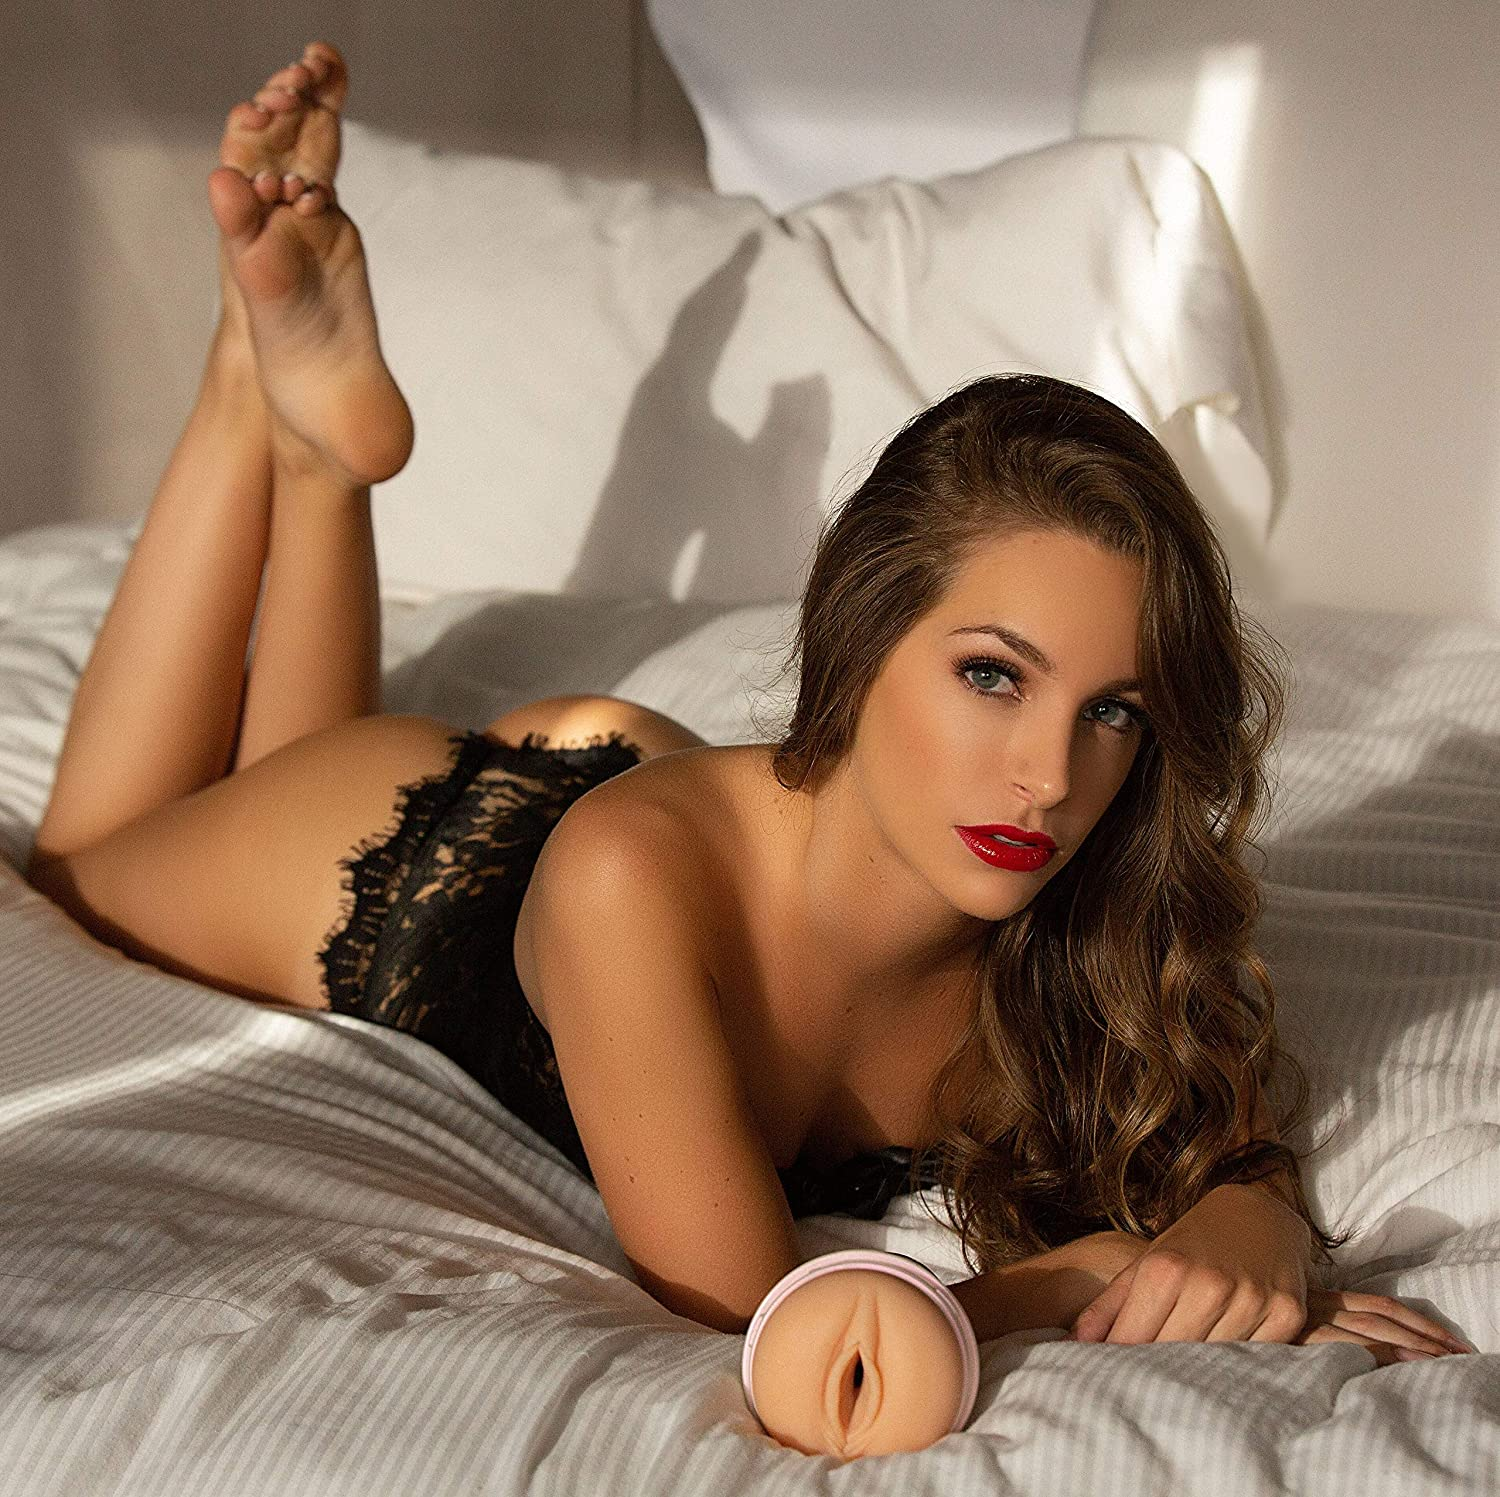 Fleshlight Girls Kimmy Granger Rebel - Sex Toys Vancouver Same Day Delivery